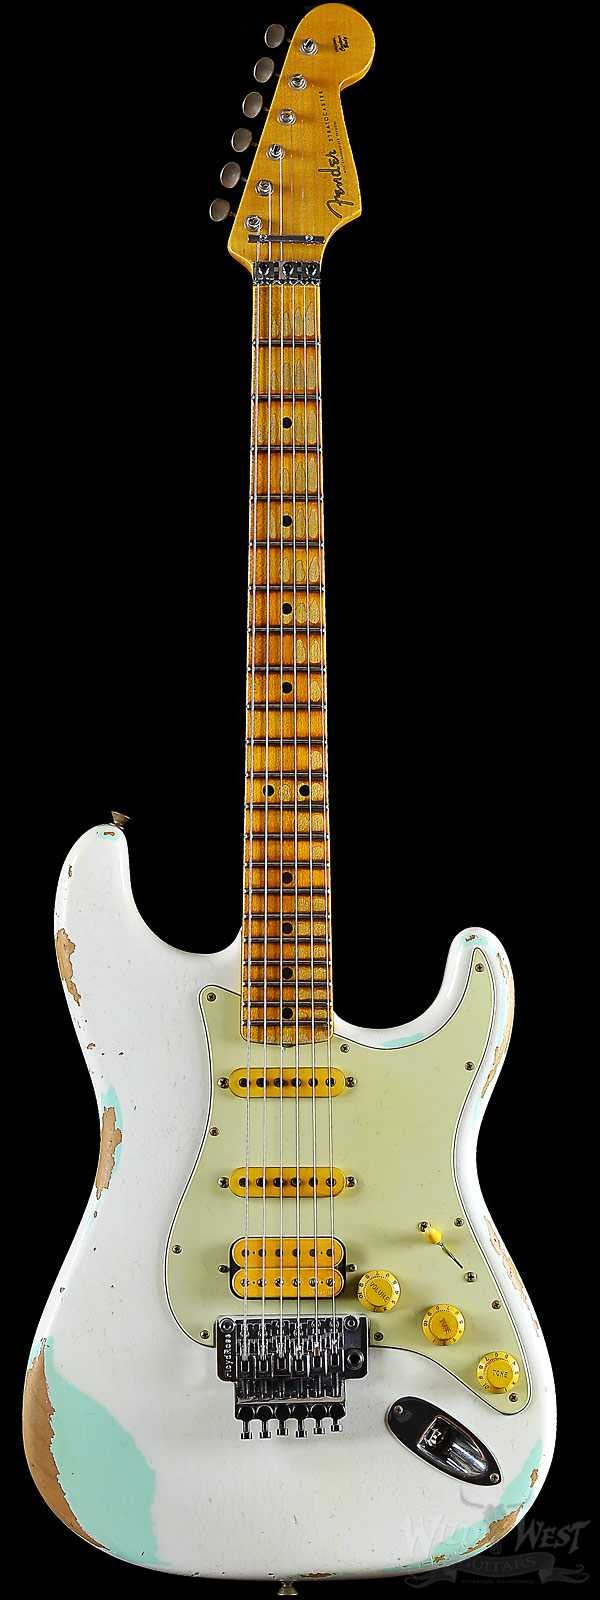 Fender 1960 Stratocaster White Lightning Faded Surf Green w/ Floyd Rose